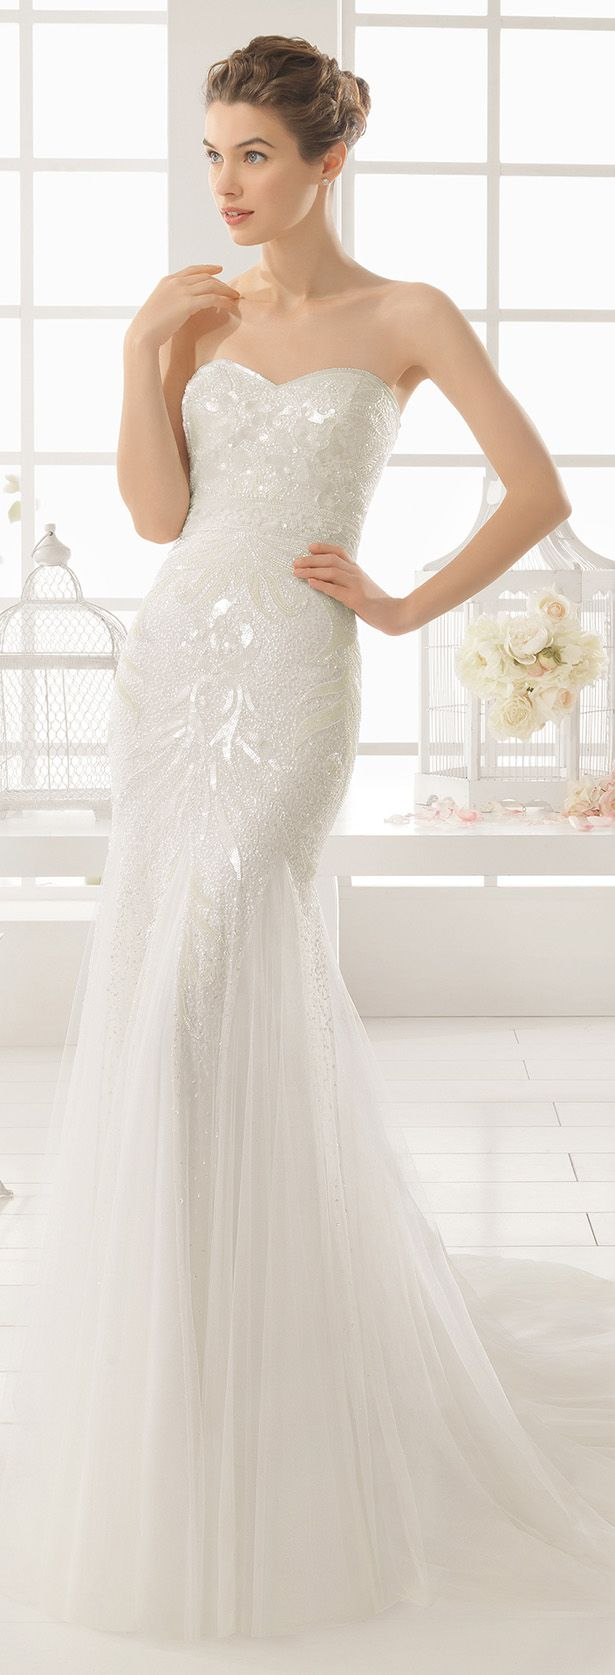 1000 ideas about aire barcelona wedding dresses on for Barcelona wedding dress designer